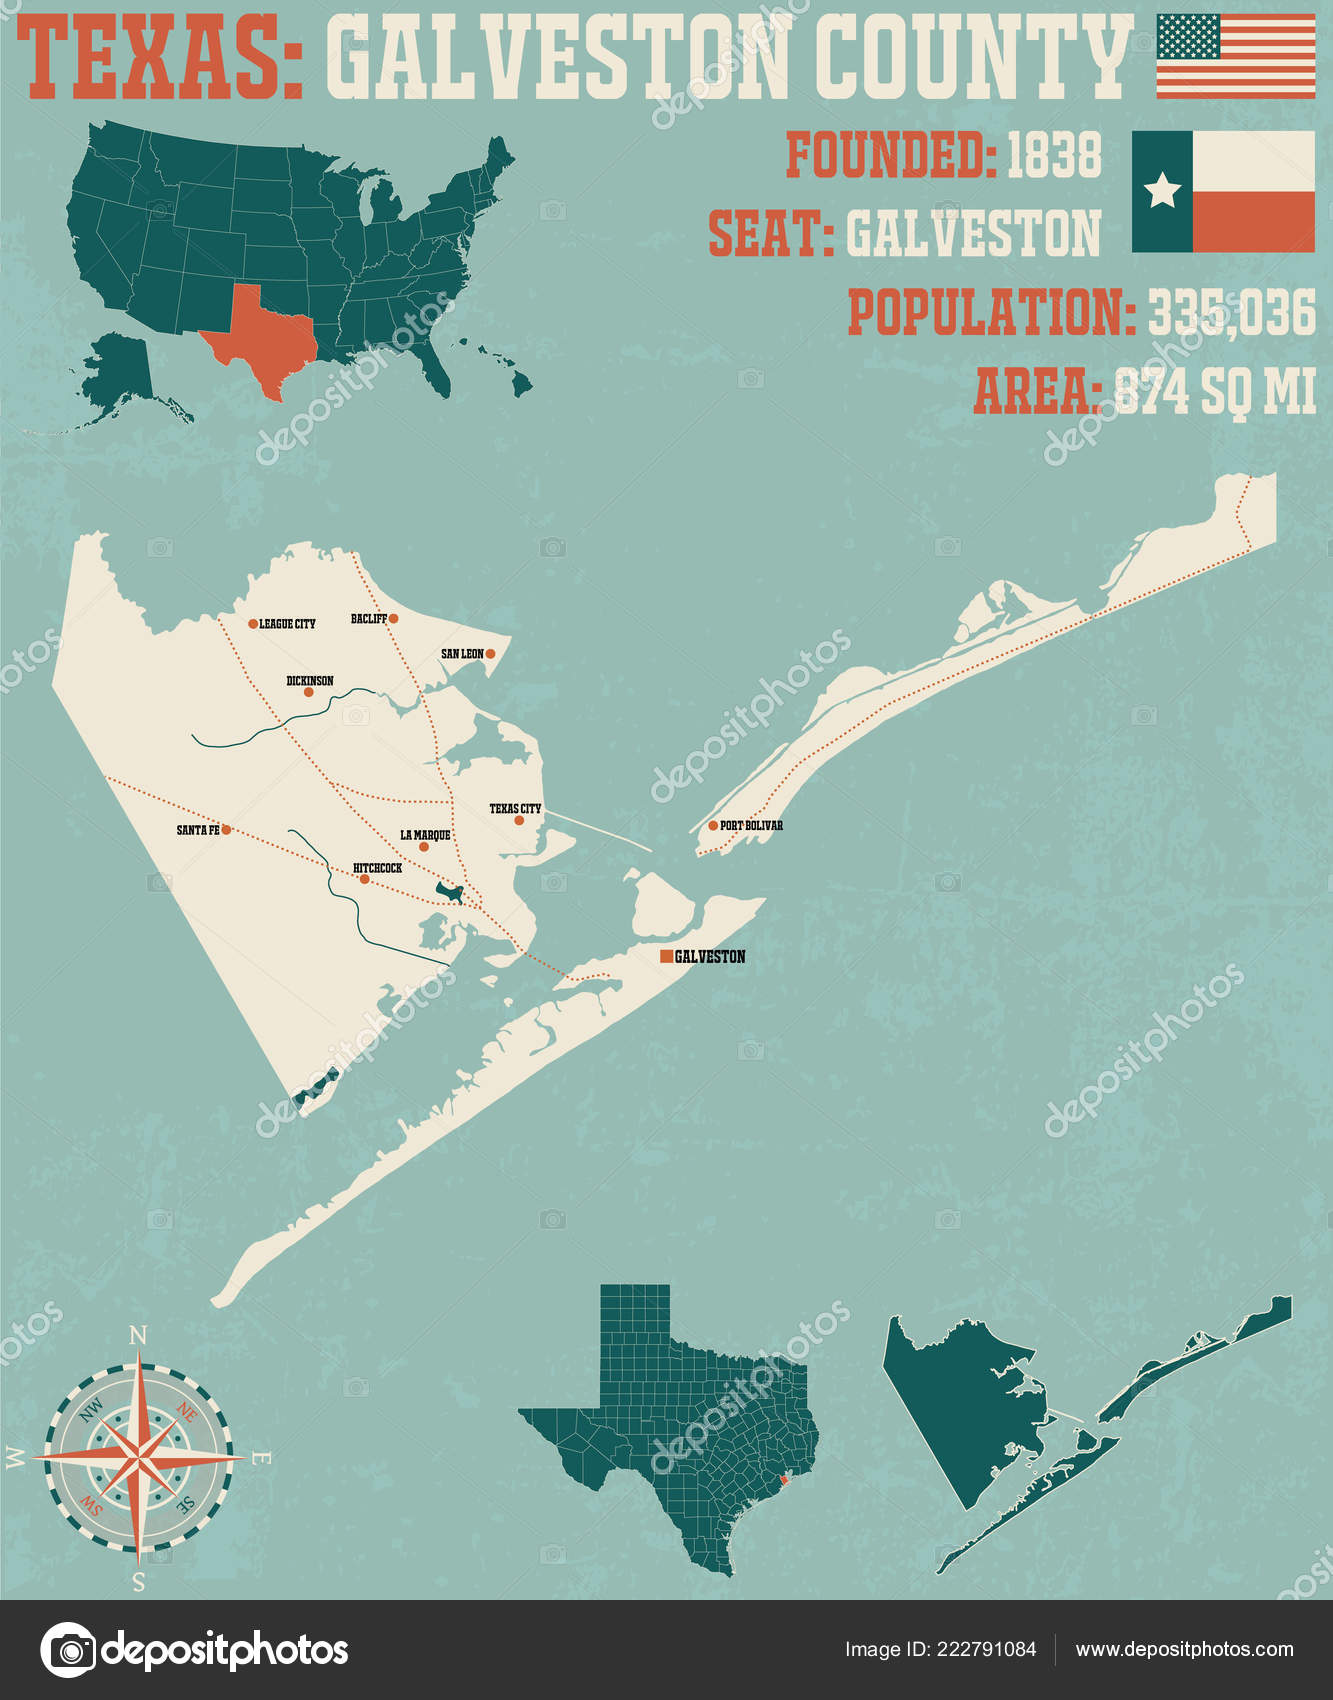 Detailed Map Galveston County Texas Usa — Stock Vector ... on city of goldsboro nc map, city of helena mt map, city of green bay wi map, city of gonzales la map, city of hays ks map, city of gardena ca map, galveston texas on a map, city of gardner ks map, galveston county tx map, port of galveston tx map, city of gretna la map, city of gallup nm map, city of hattiesburg ms map, city of hawthorne ca map, galveston bay map, city of garden grove ca map, city of grand forks nd map, city of huntington beach ca map, city of gainesville fl map, city of glendale ca map,